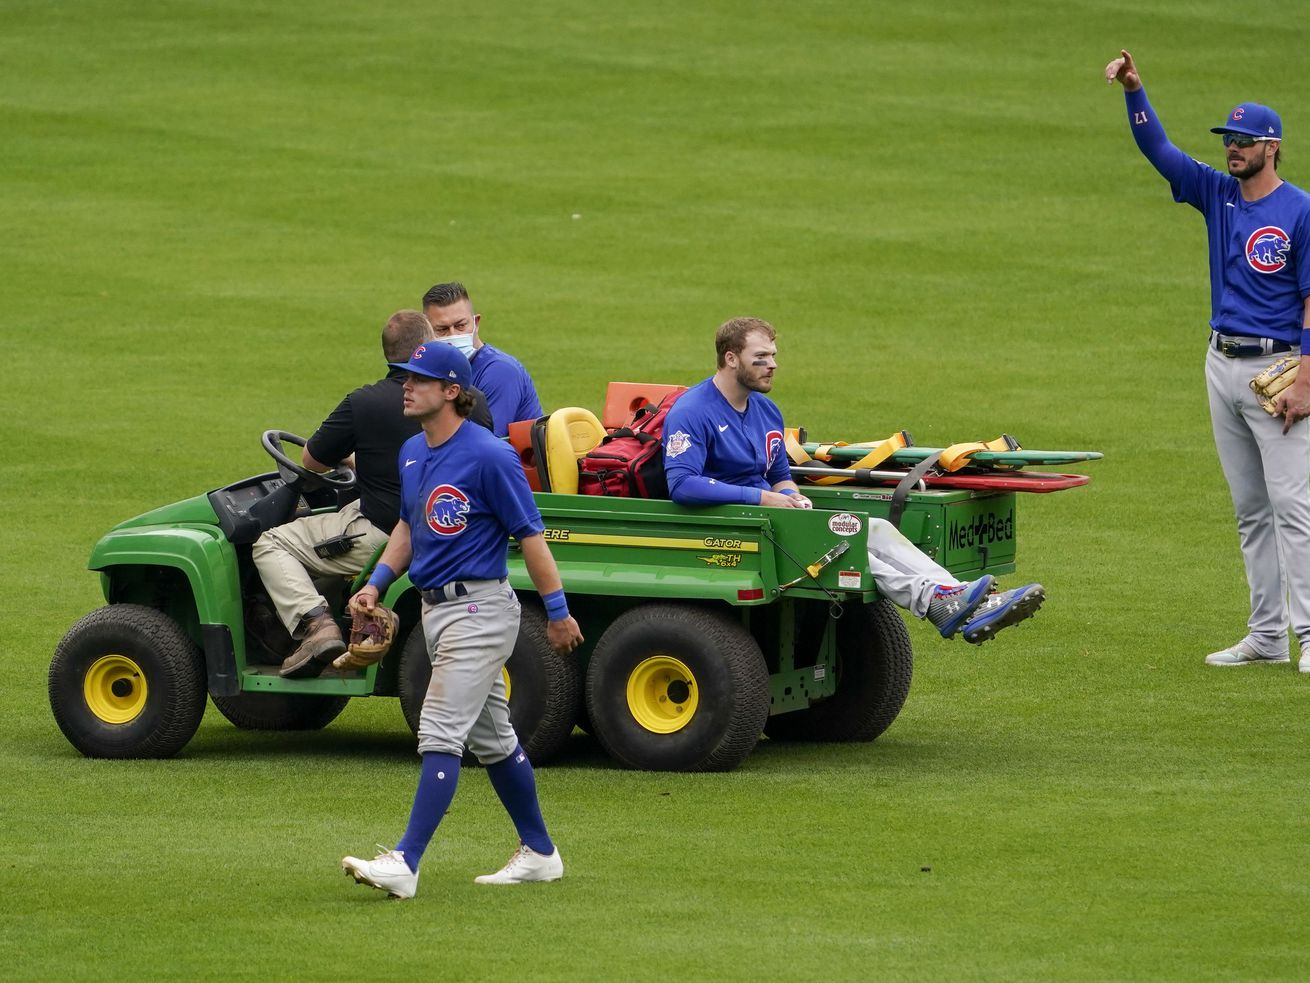 Cubs center fielder Ian Happ, center, is carted off after a collision with teammate Nico Hoerner, foreground, in the eighth inning of Sunday's game.